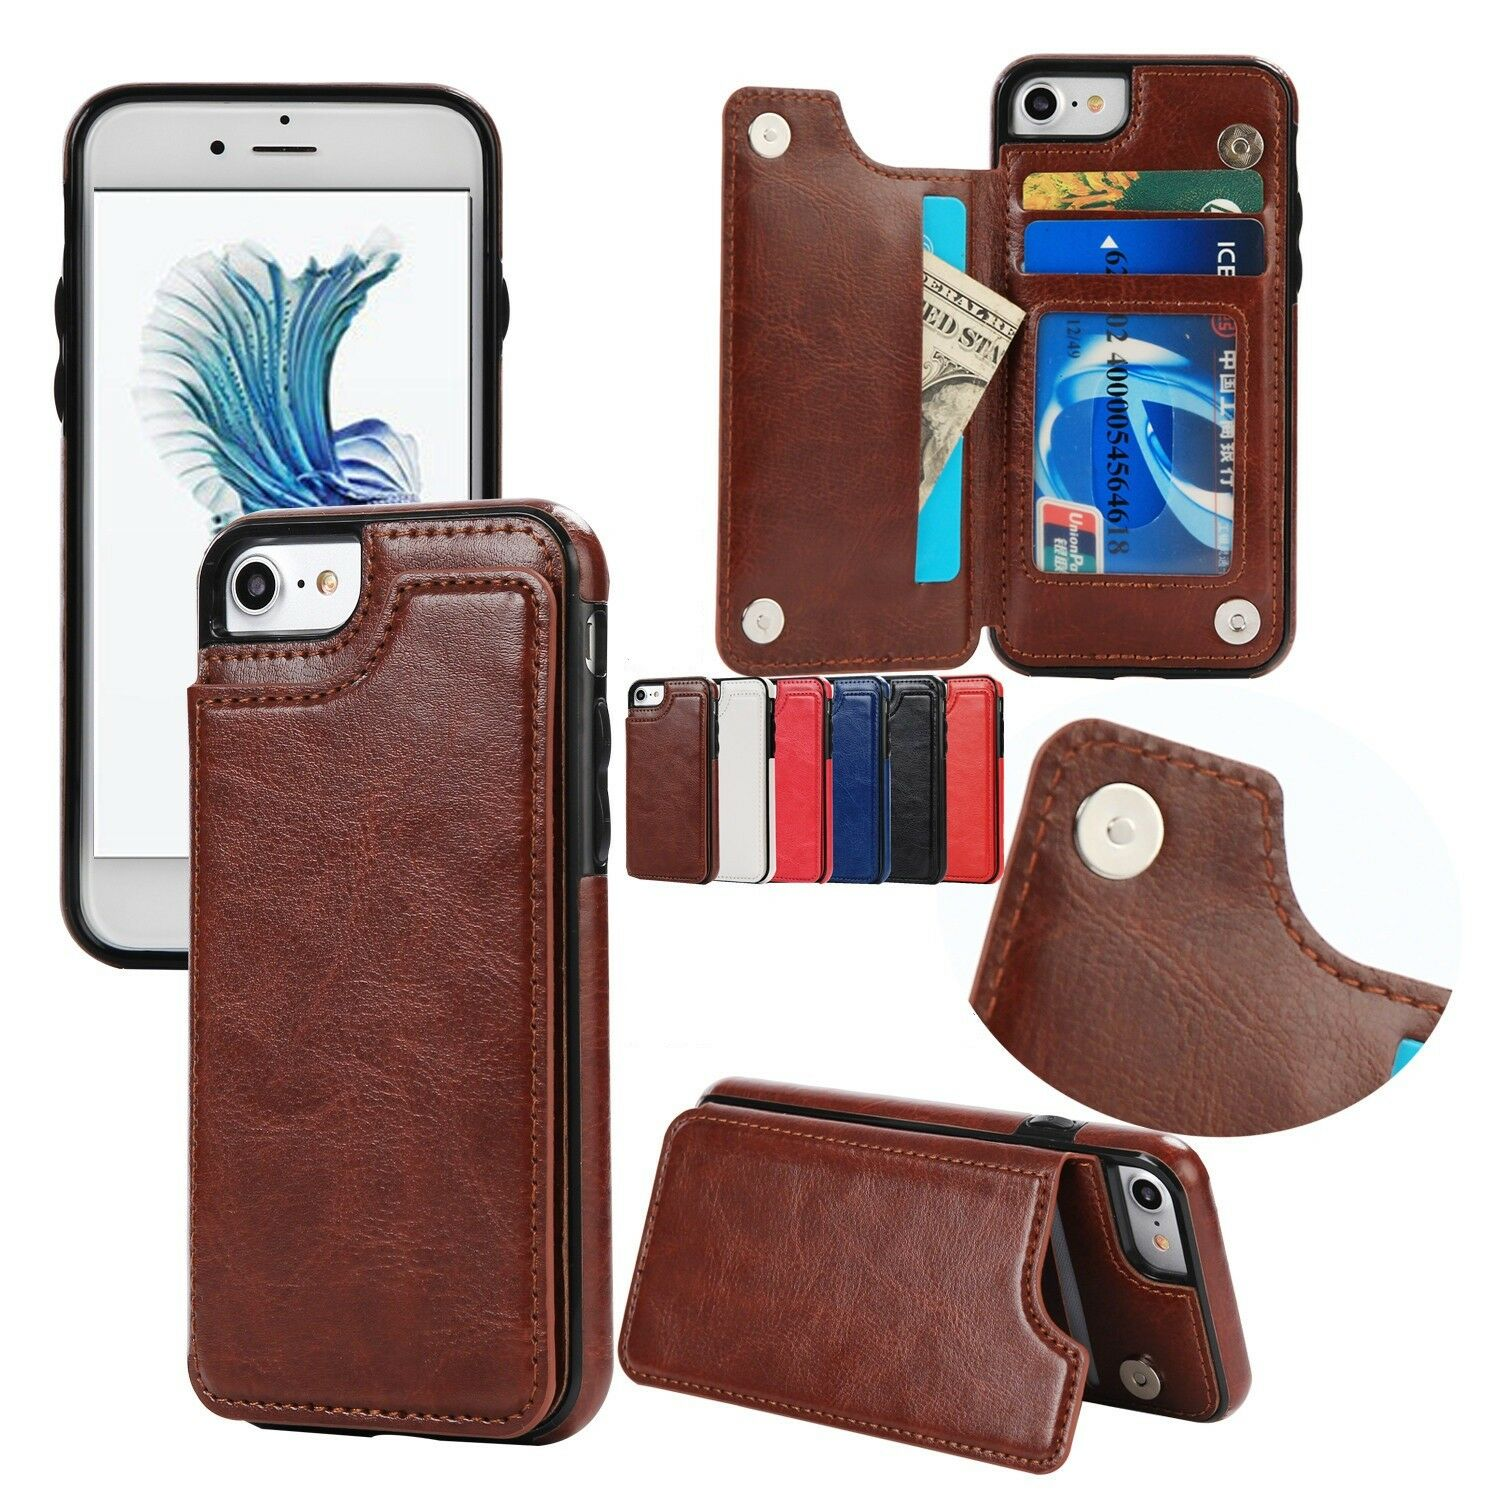 Flip Stand Leather Wallet Card Back Case For iPhoneXS Max/X/8/7/6/6s/Plus